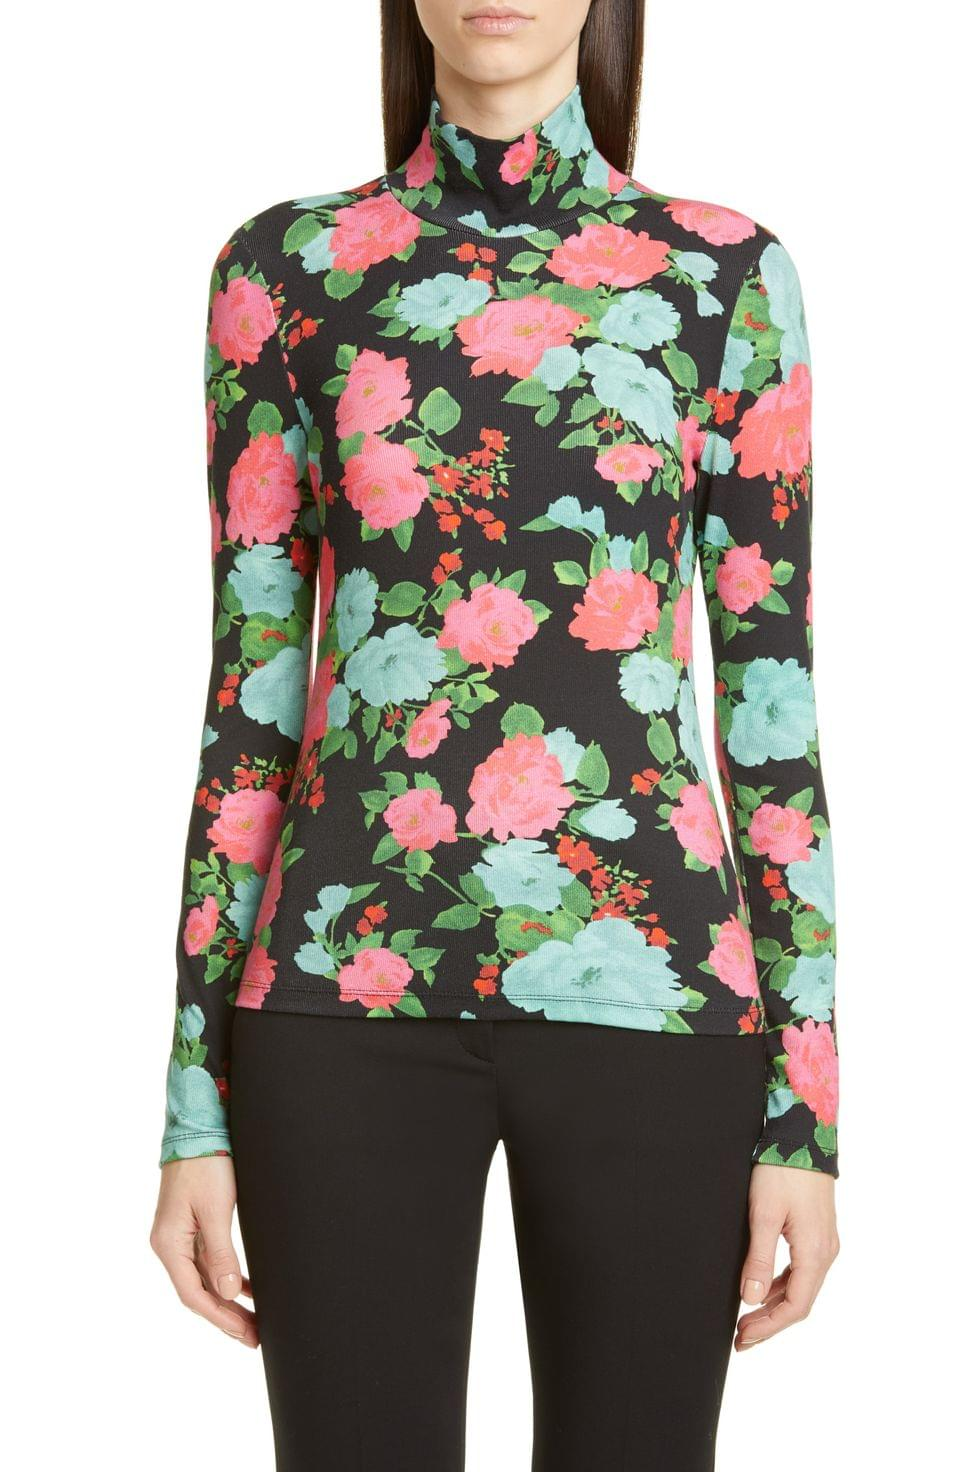 Women's Erdem Floral Print Ribbed Turtleneck Top